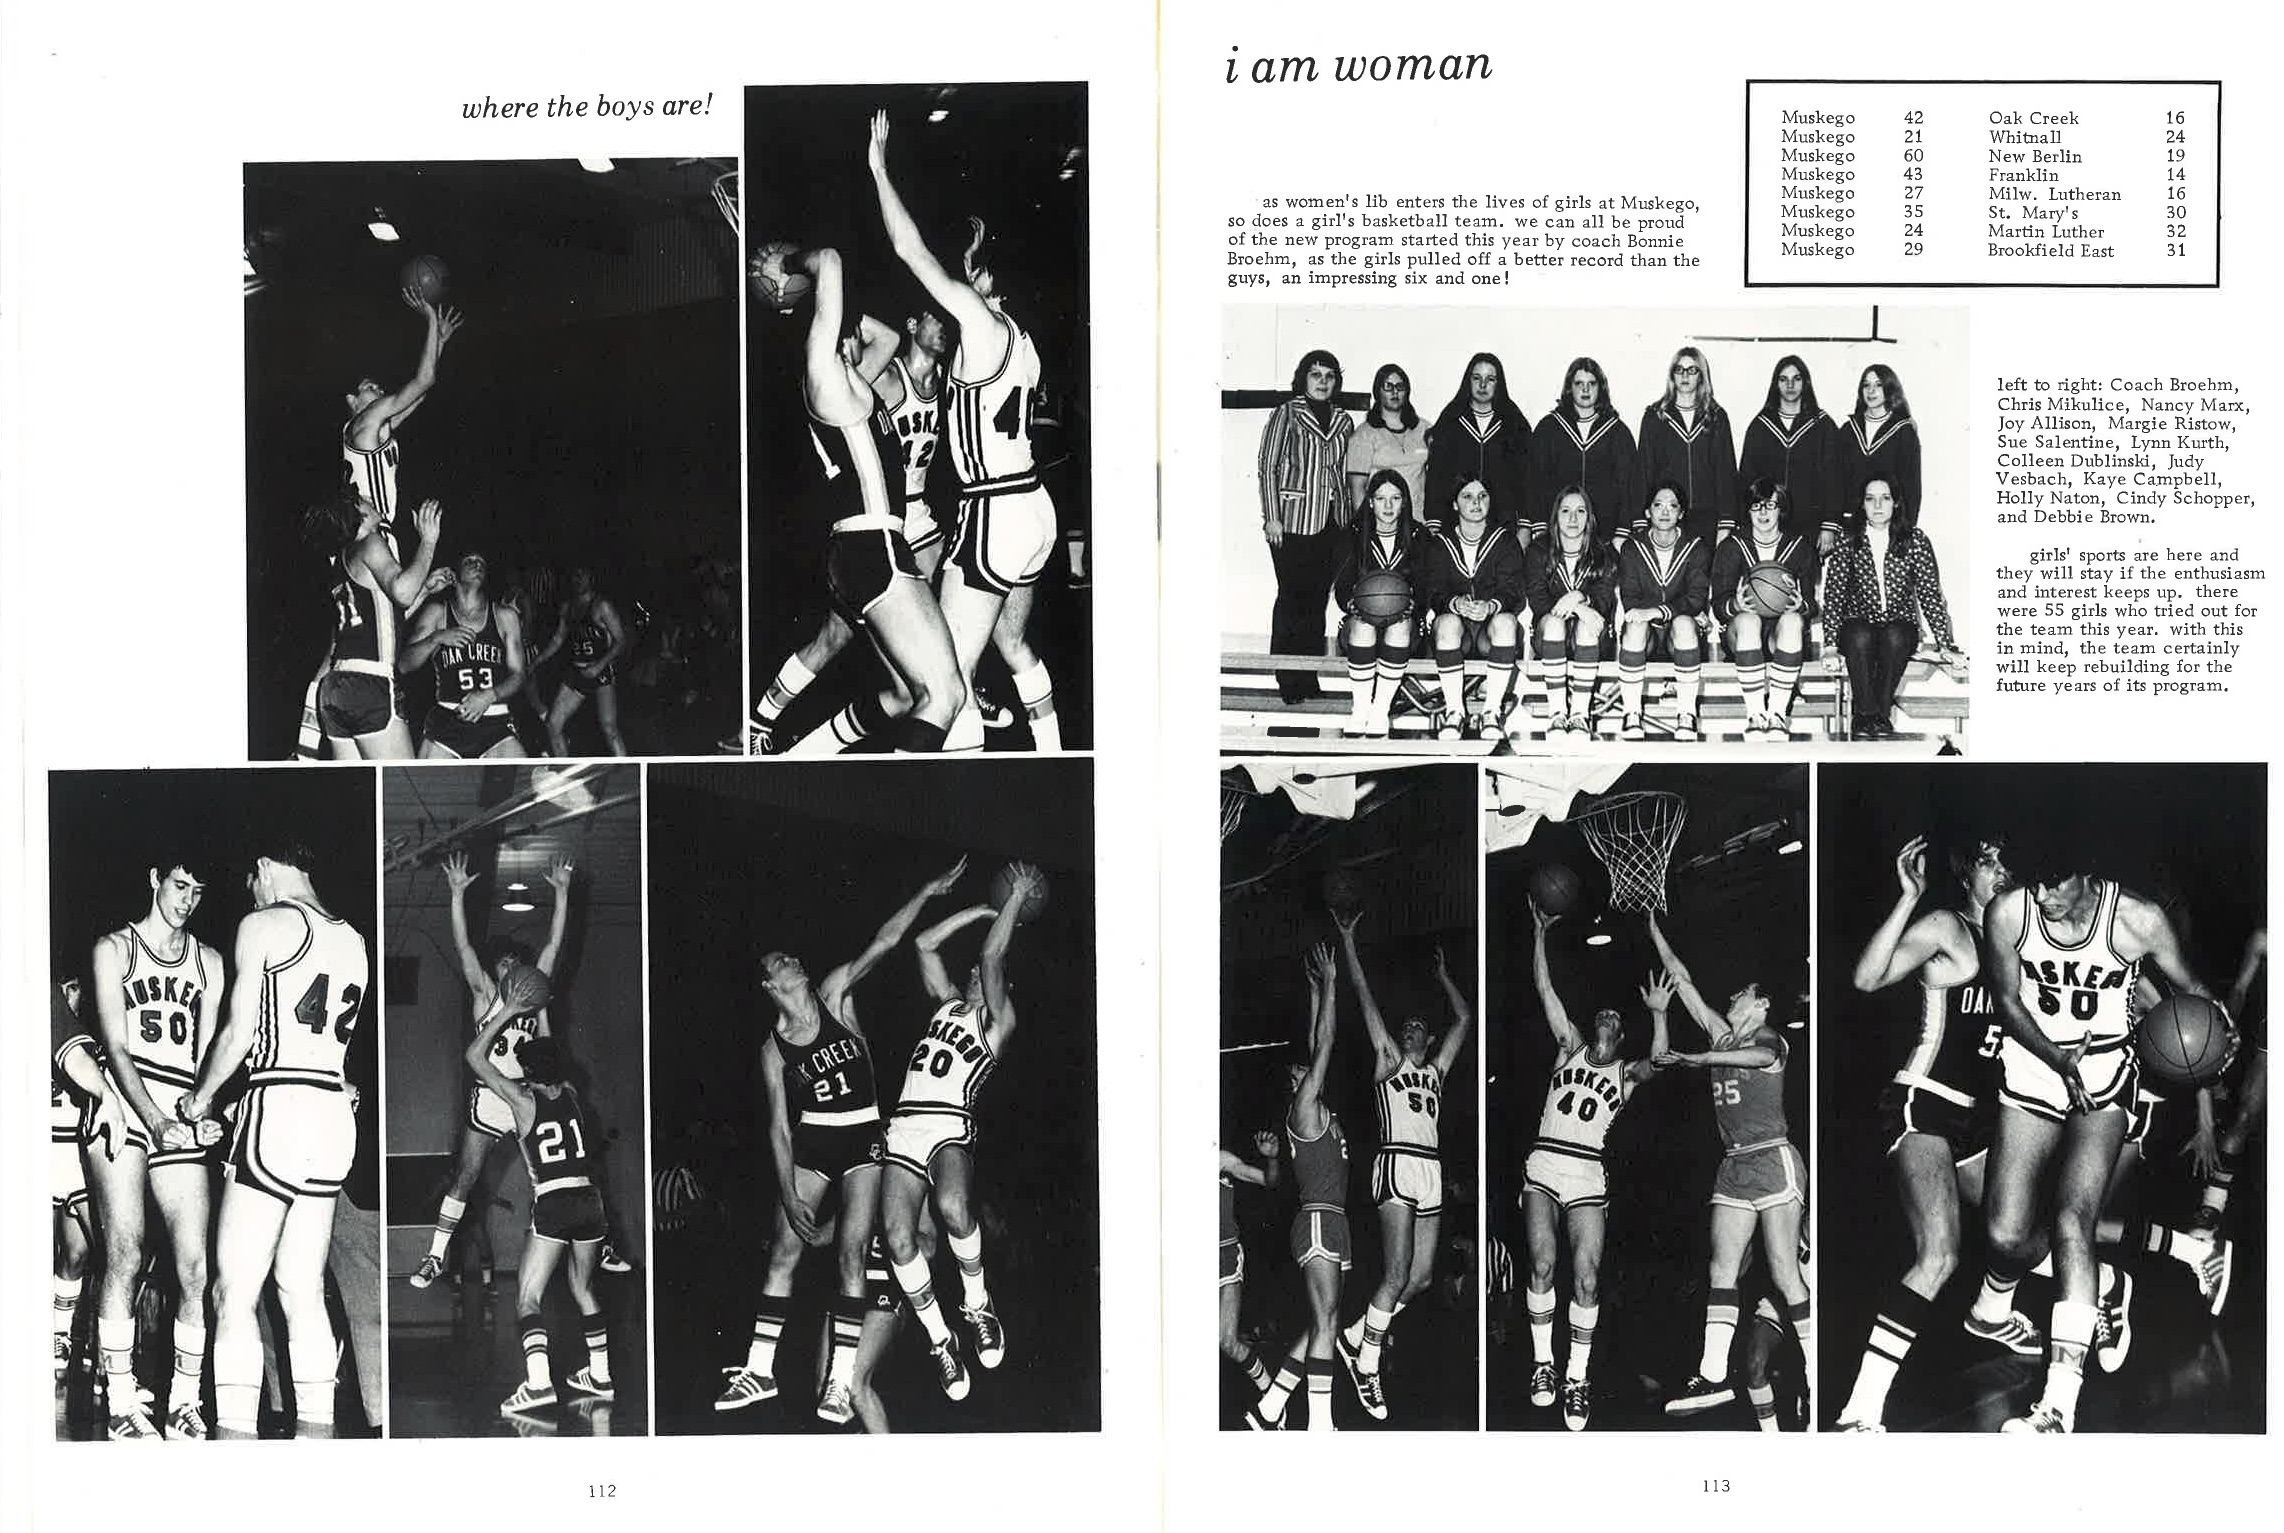 1973_Yearbook_112-113.jpg